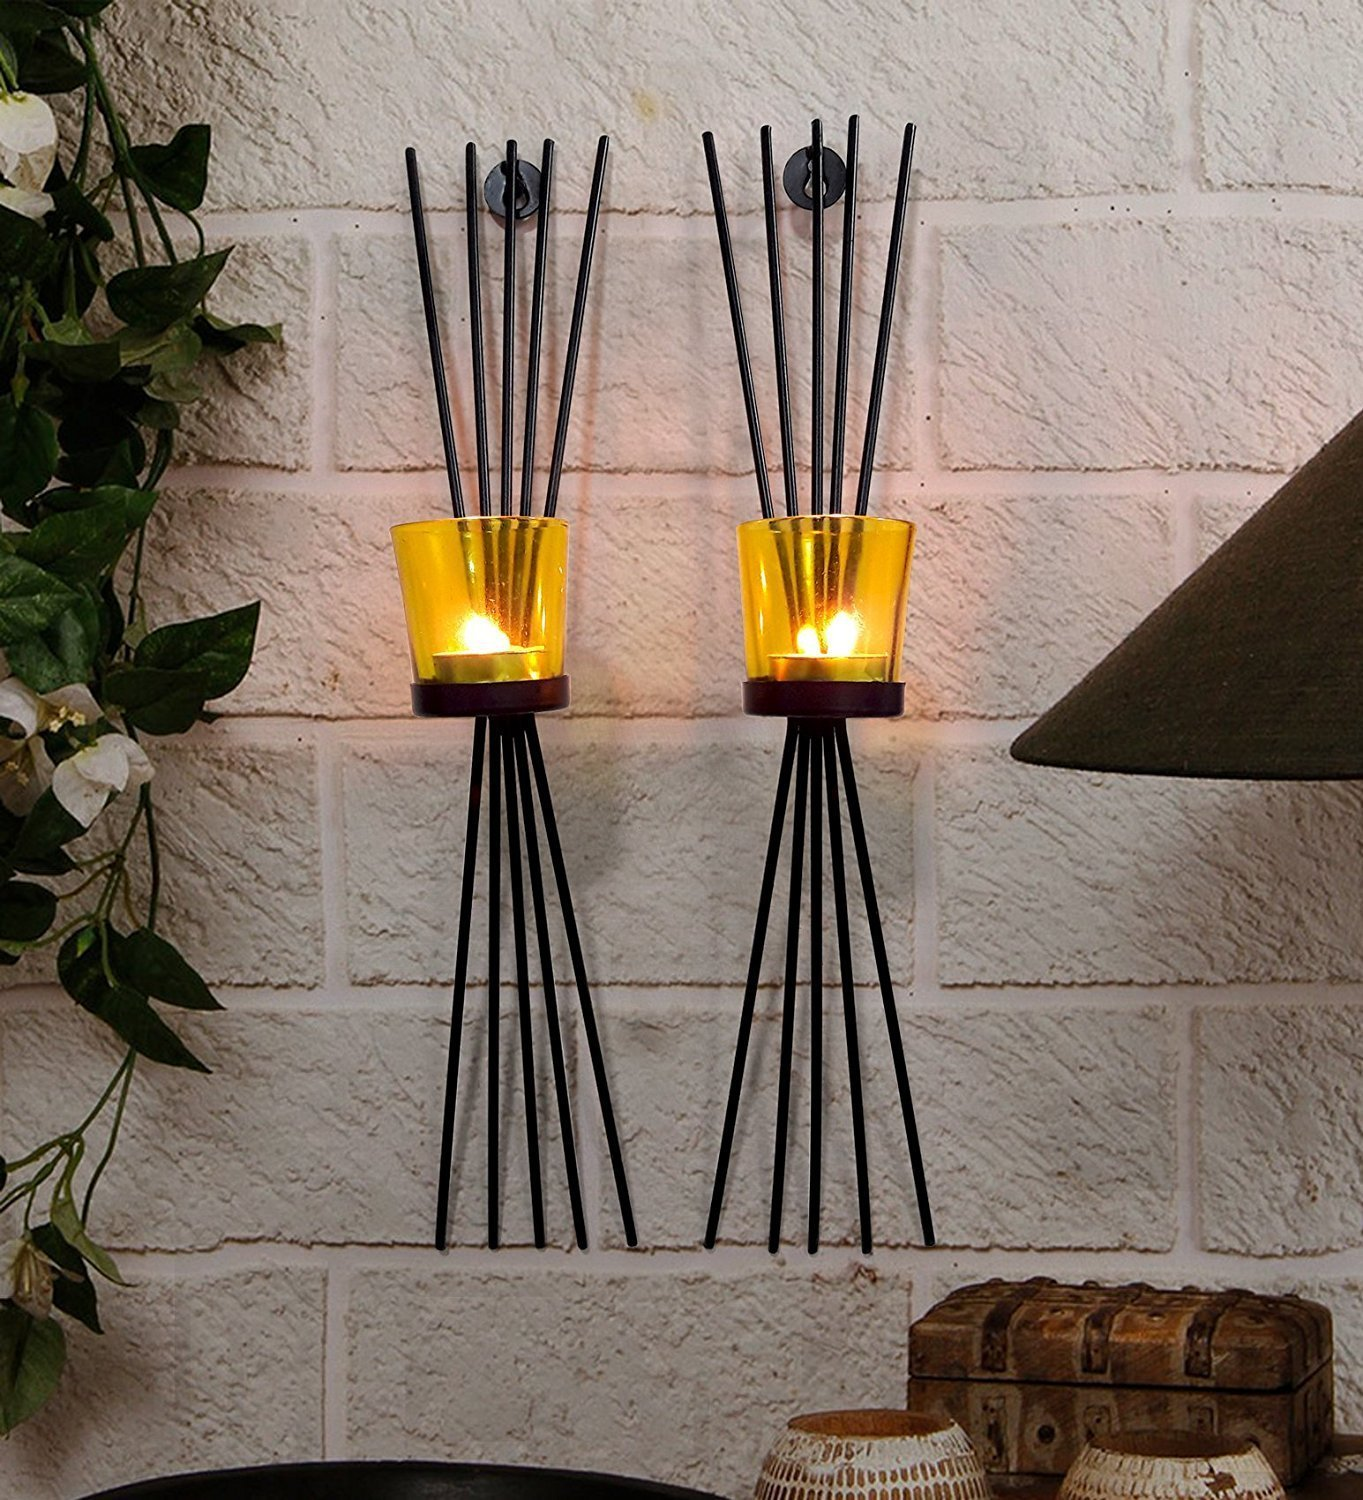 CraftVatika Metal Black Wall Candle Holder Sconces Set Of 2   Wall Hanging Mounted Holders   Tealight Wall Sconce For Gifts For House Warming Ceremony   Home Decor